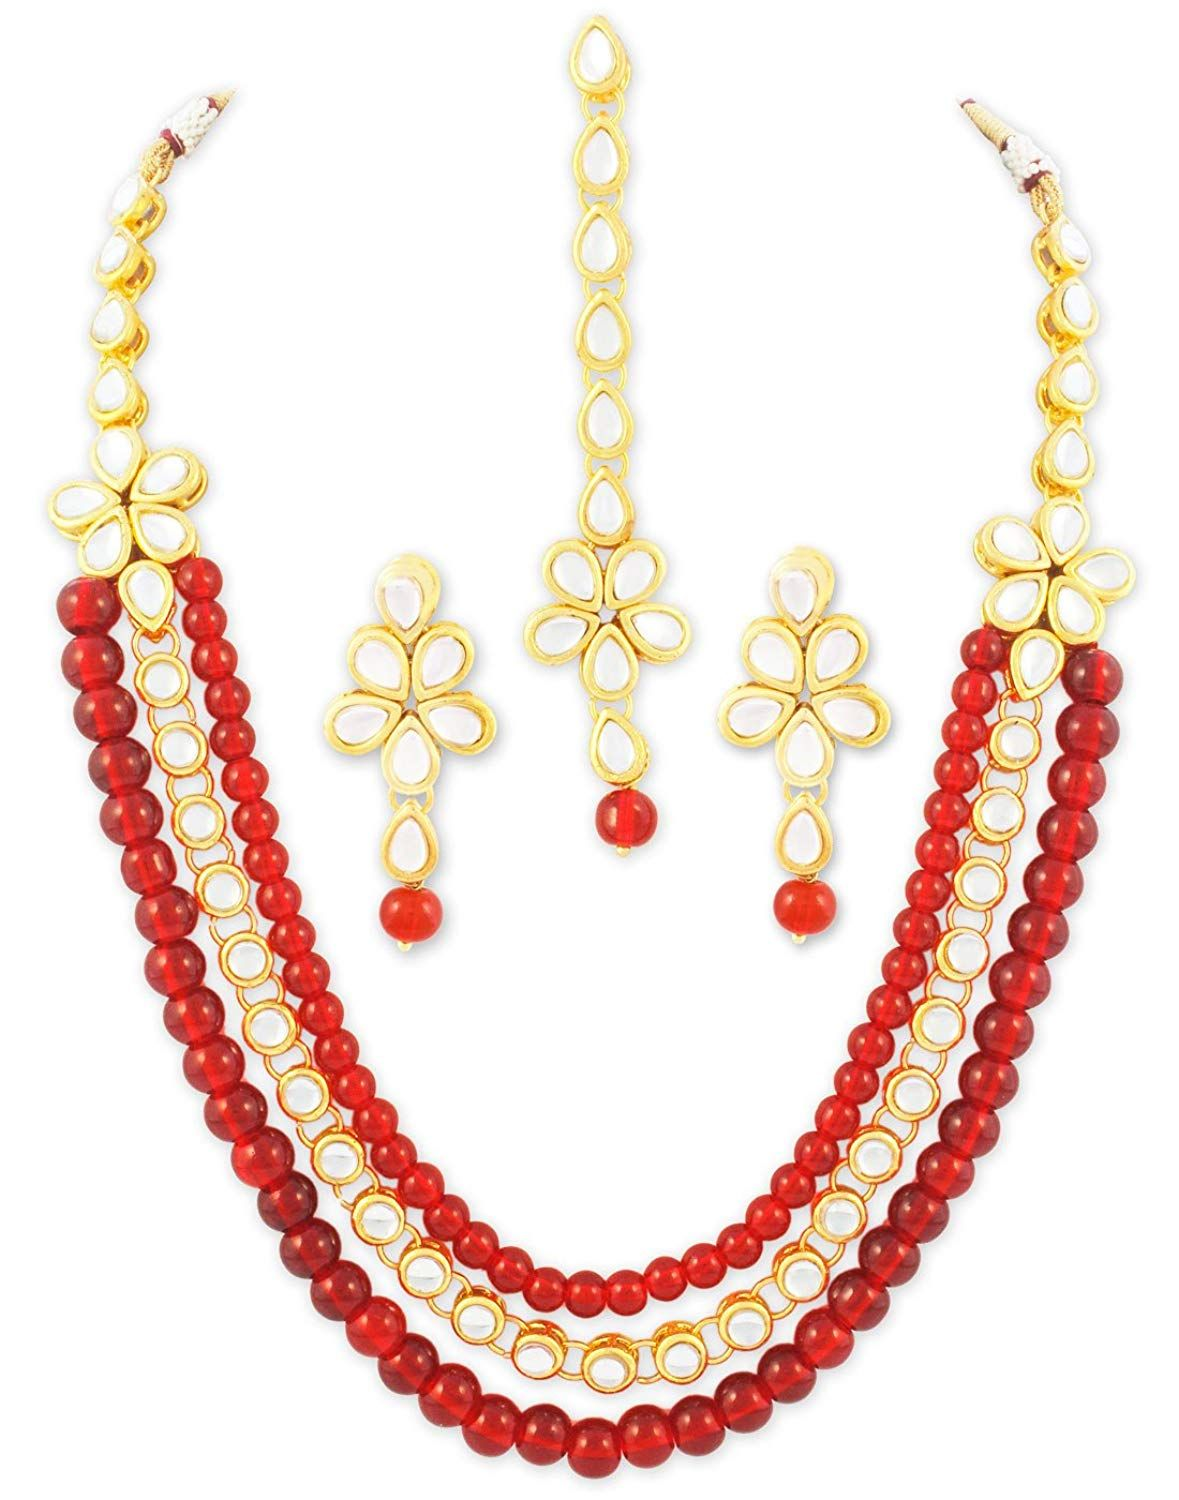 Karatcart Indian Traditional Mughal Bridal Designer Jewelry Gold Plated Red Stone Kundan Necklace Set for Women